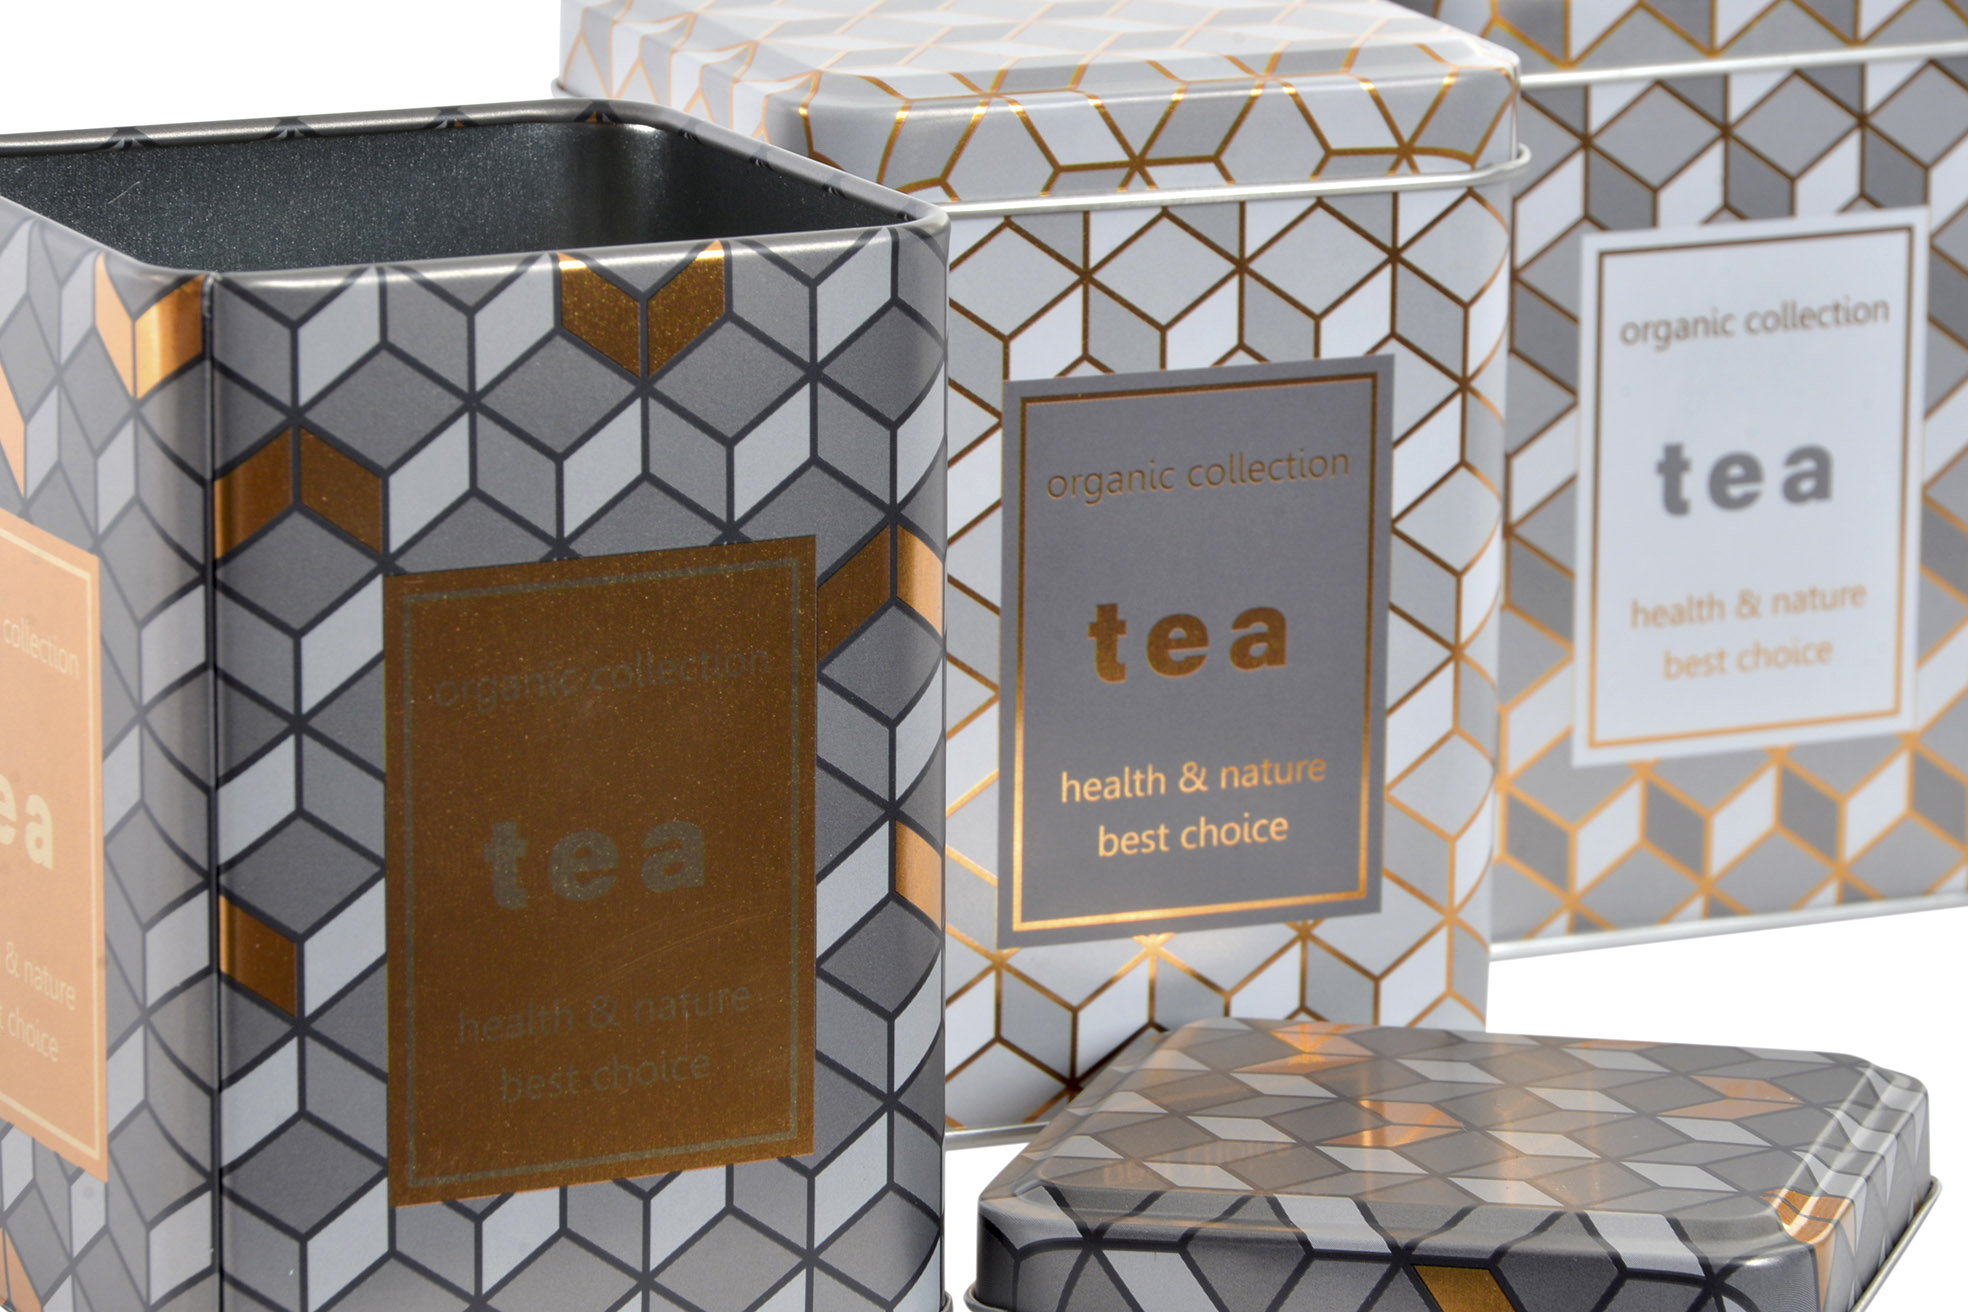 Lata Organic Collection - Tea Shop Geoherbal - 7,5 x 7,5 x 10